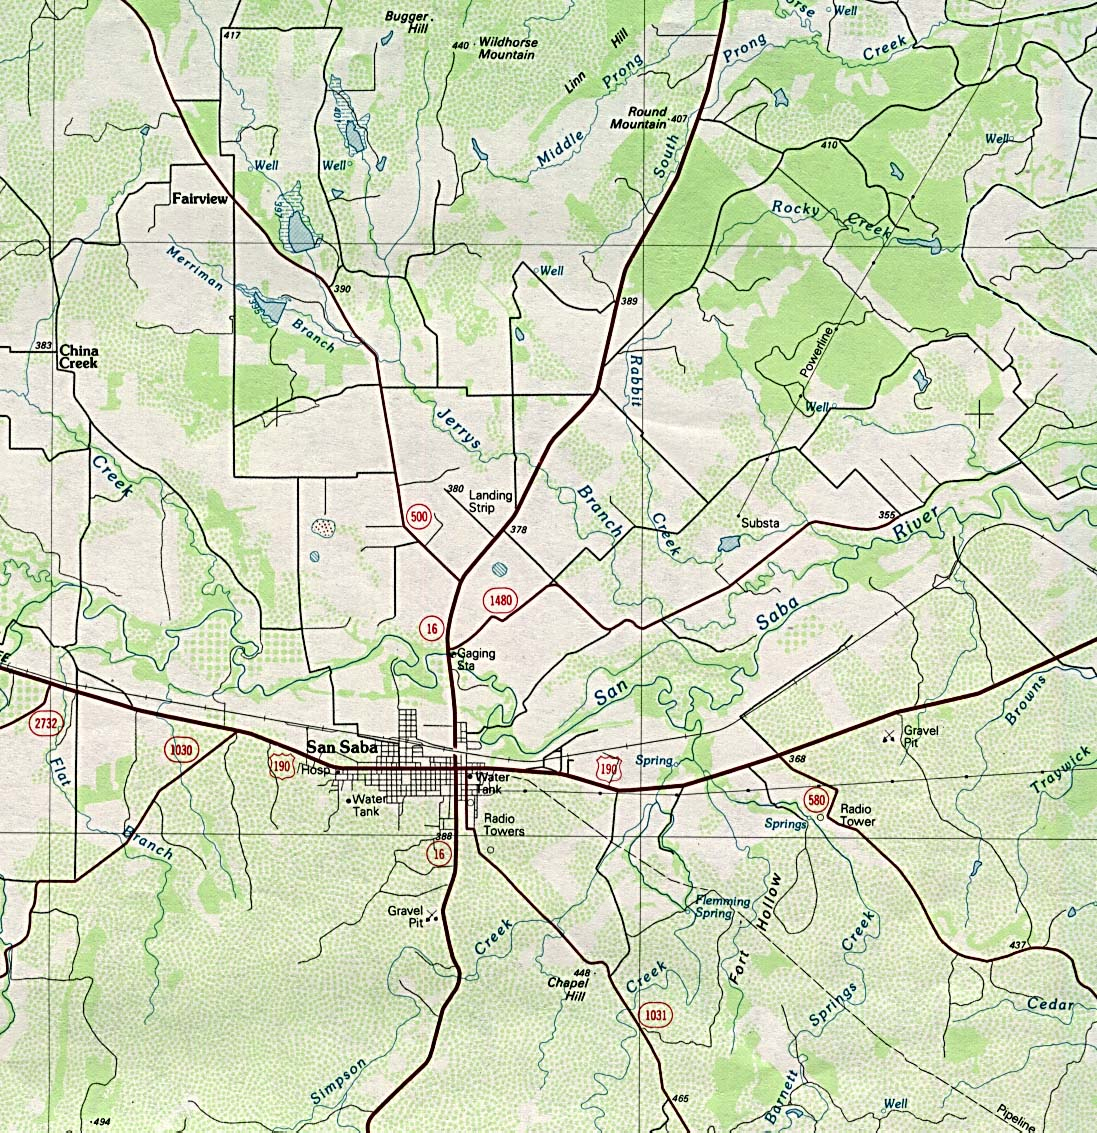 Texas City Maps - Perry-Castañeda Map Collection - Ut Library Online - Google Maps Killeen Texas